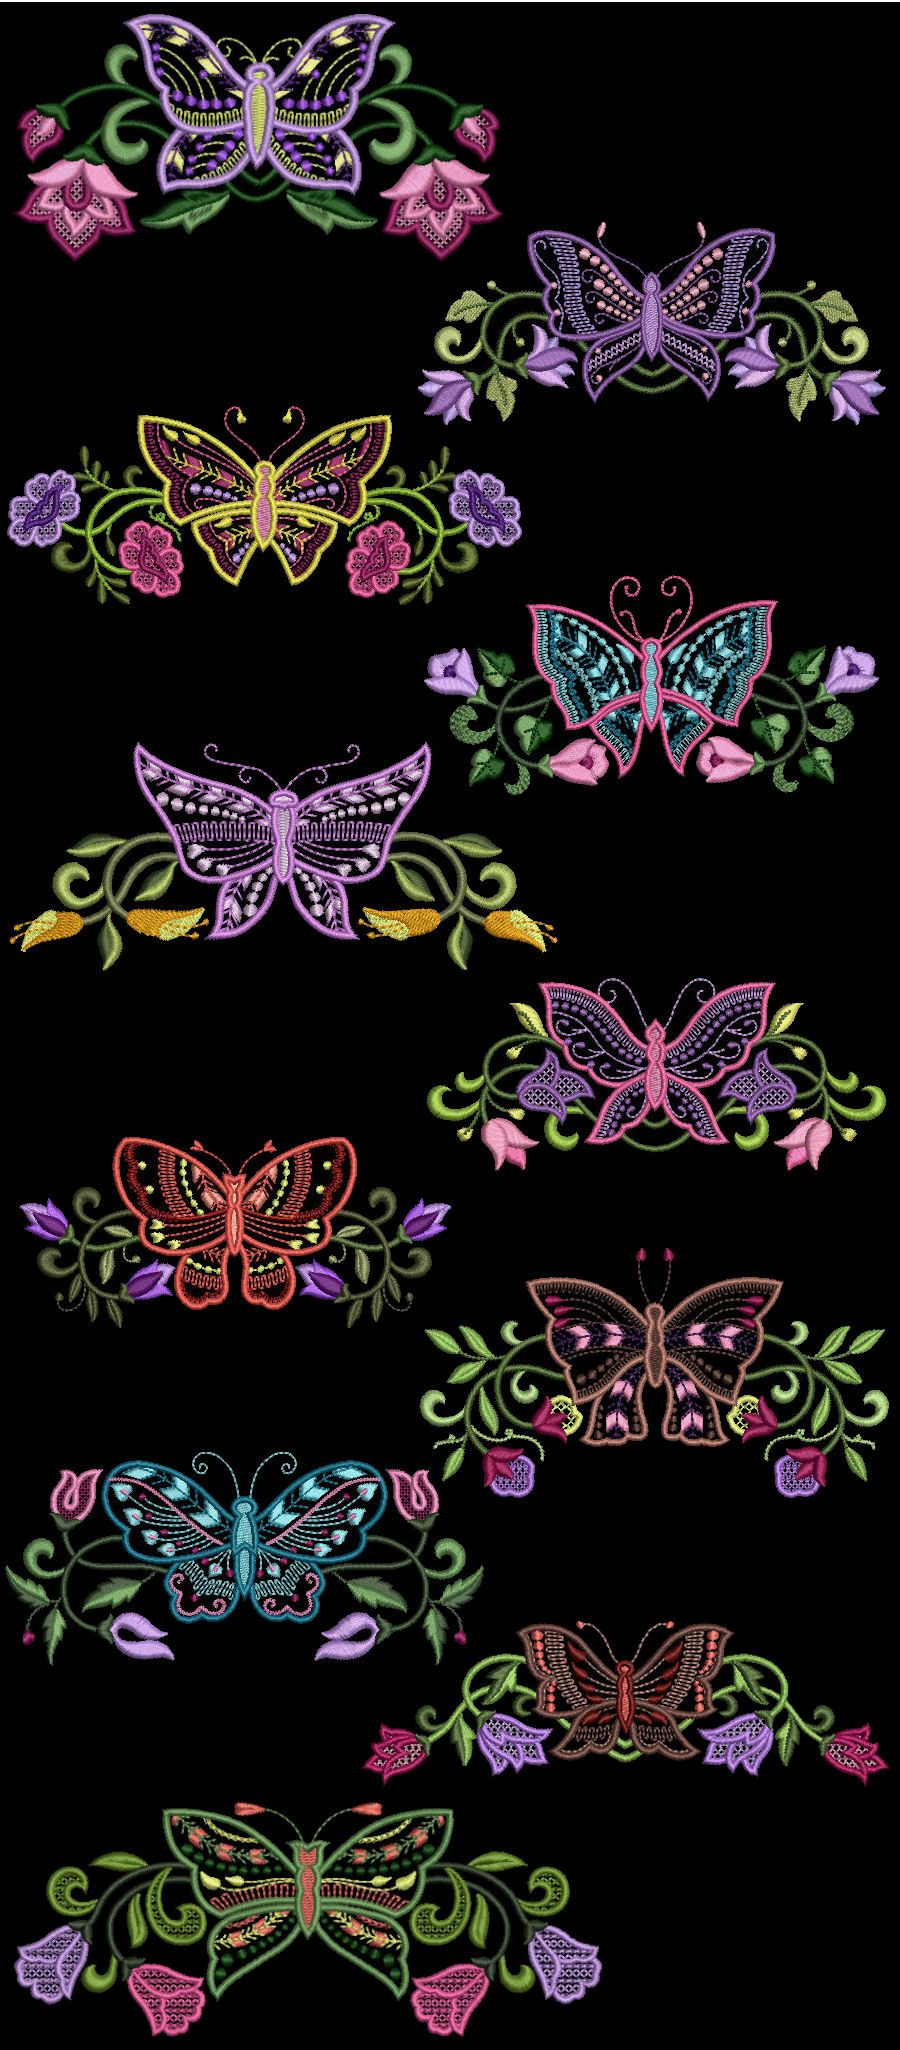 free brother embroidery designs in pes - Google Search   Machine ...